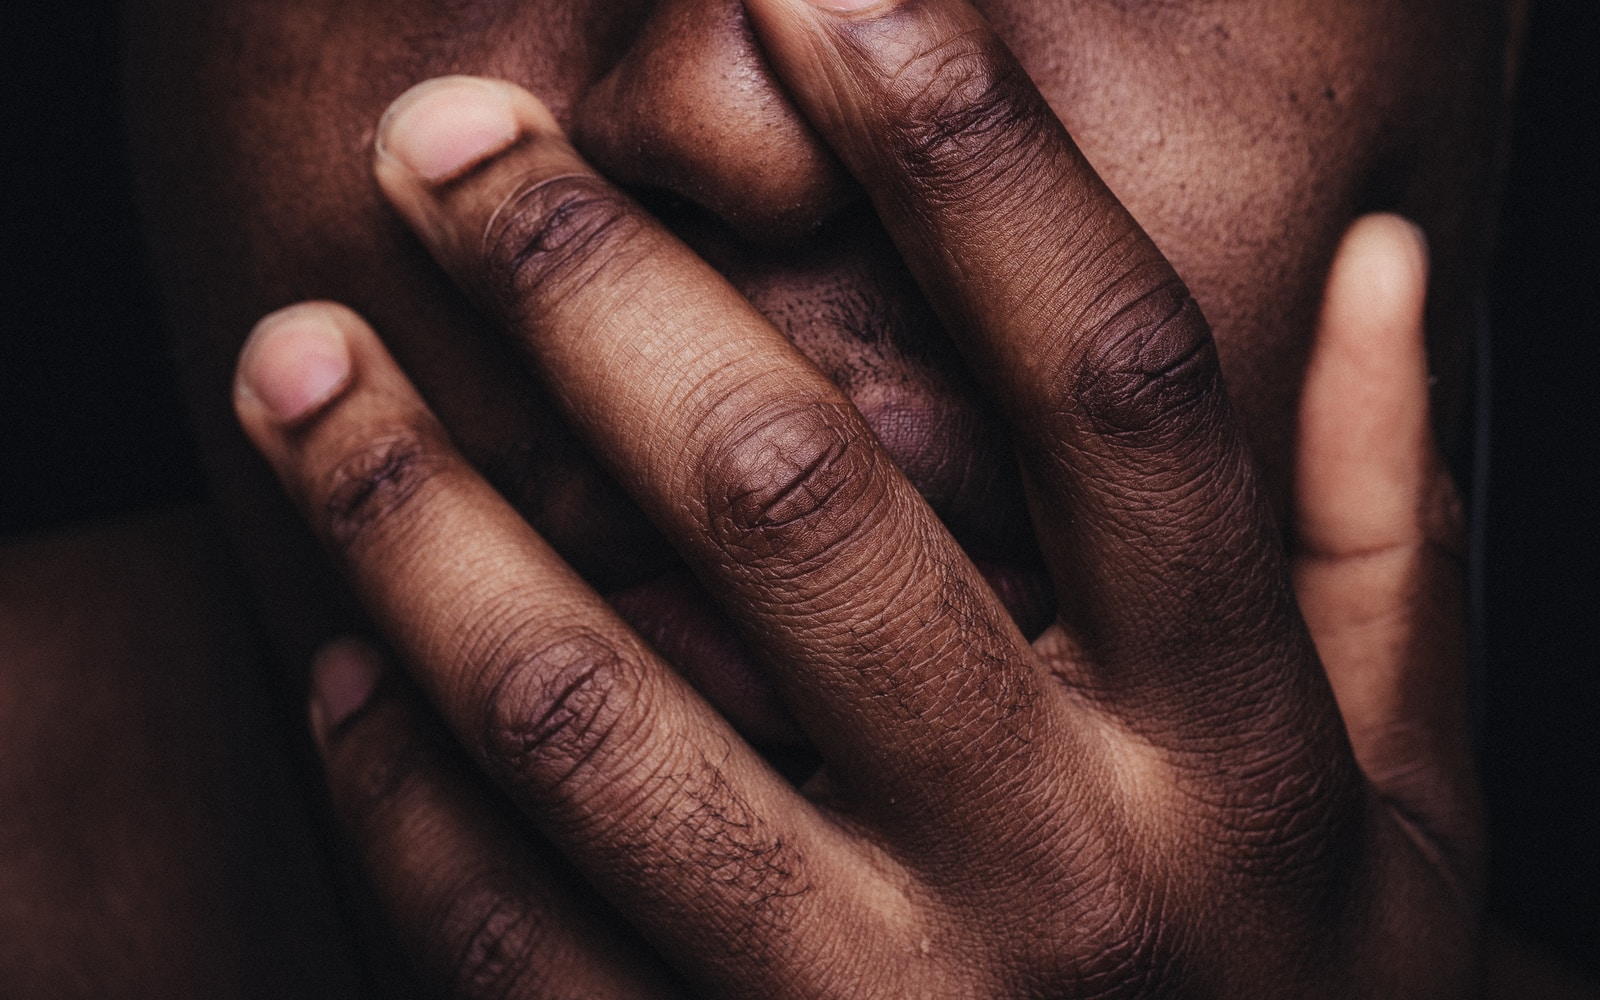 persons hand on face